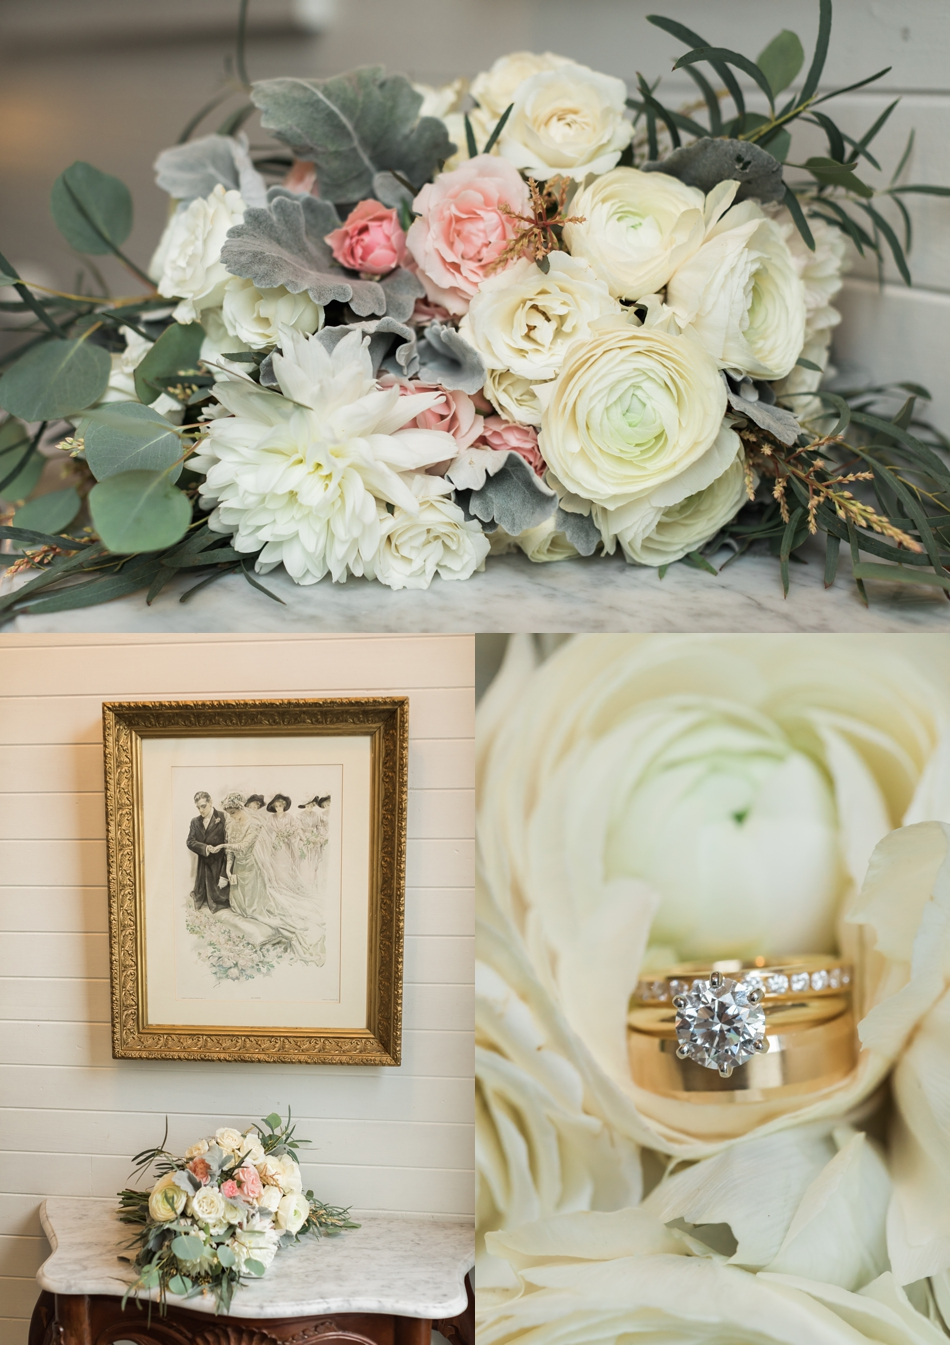 Photo of wedding details at an intimate wedding at Belle Chapel in Snohomish, a wedding venue near Seattle.   Joanna Monger Photography   Snohomish & Seattle Photographer